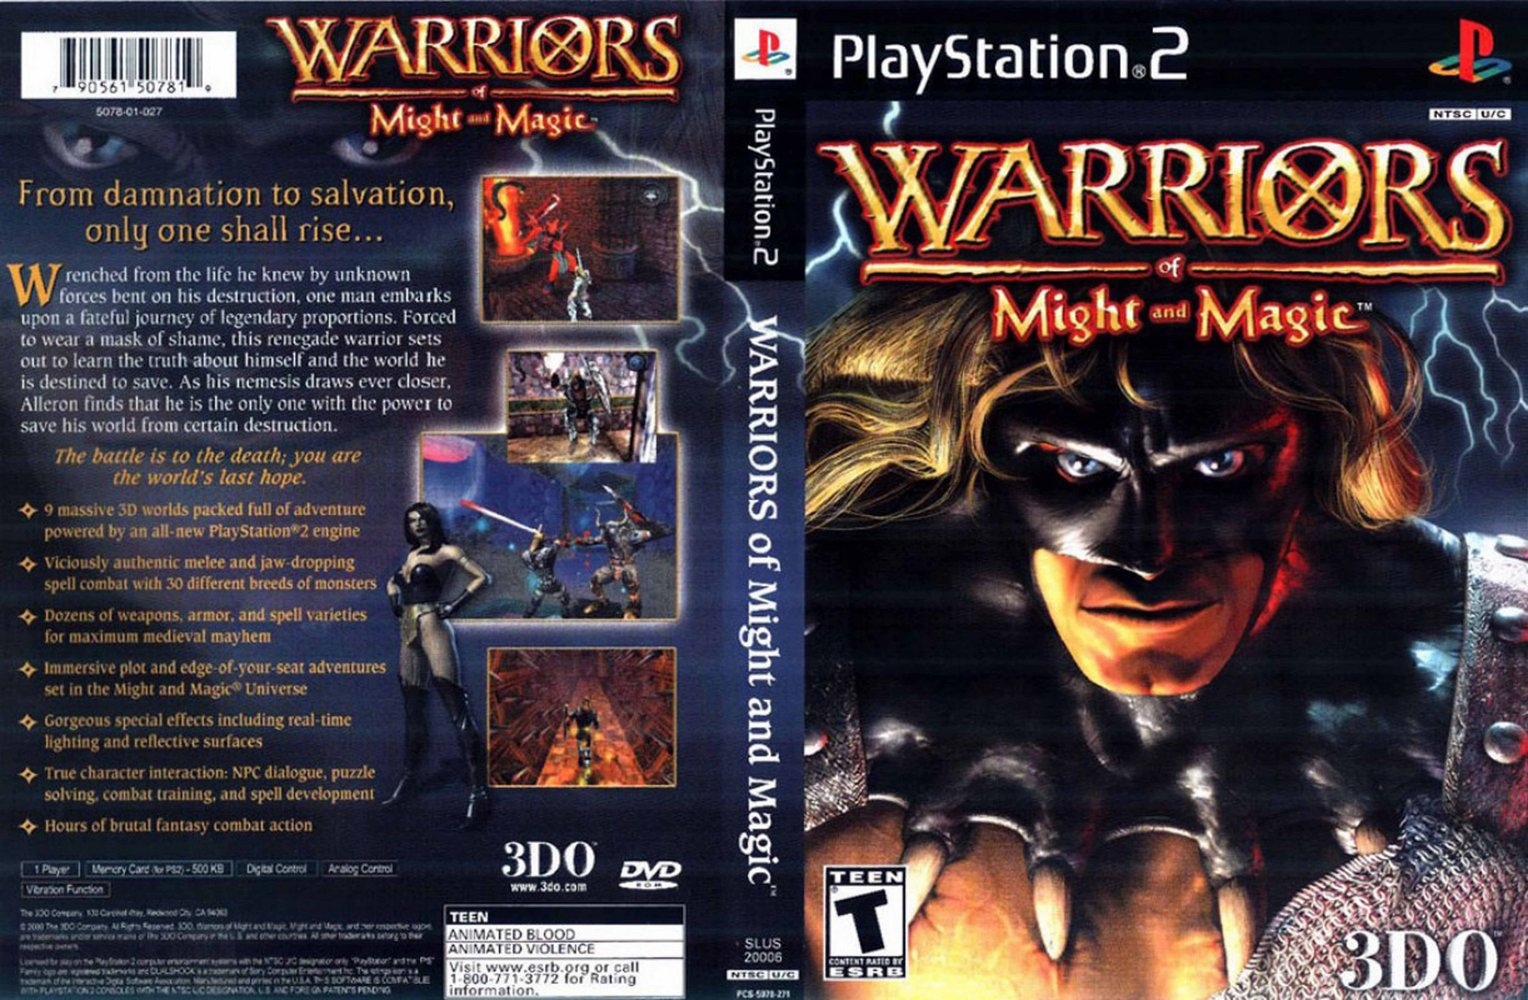 Warriors of might and magic ps2 cheat codes